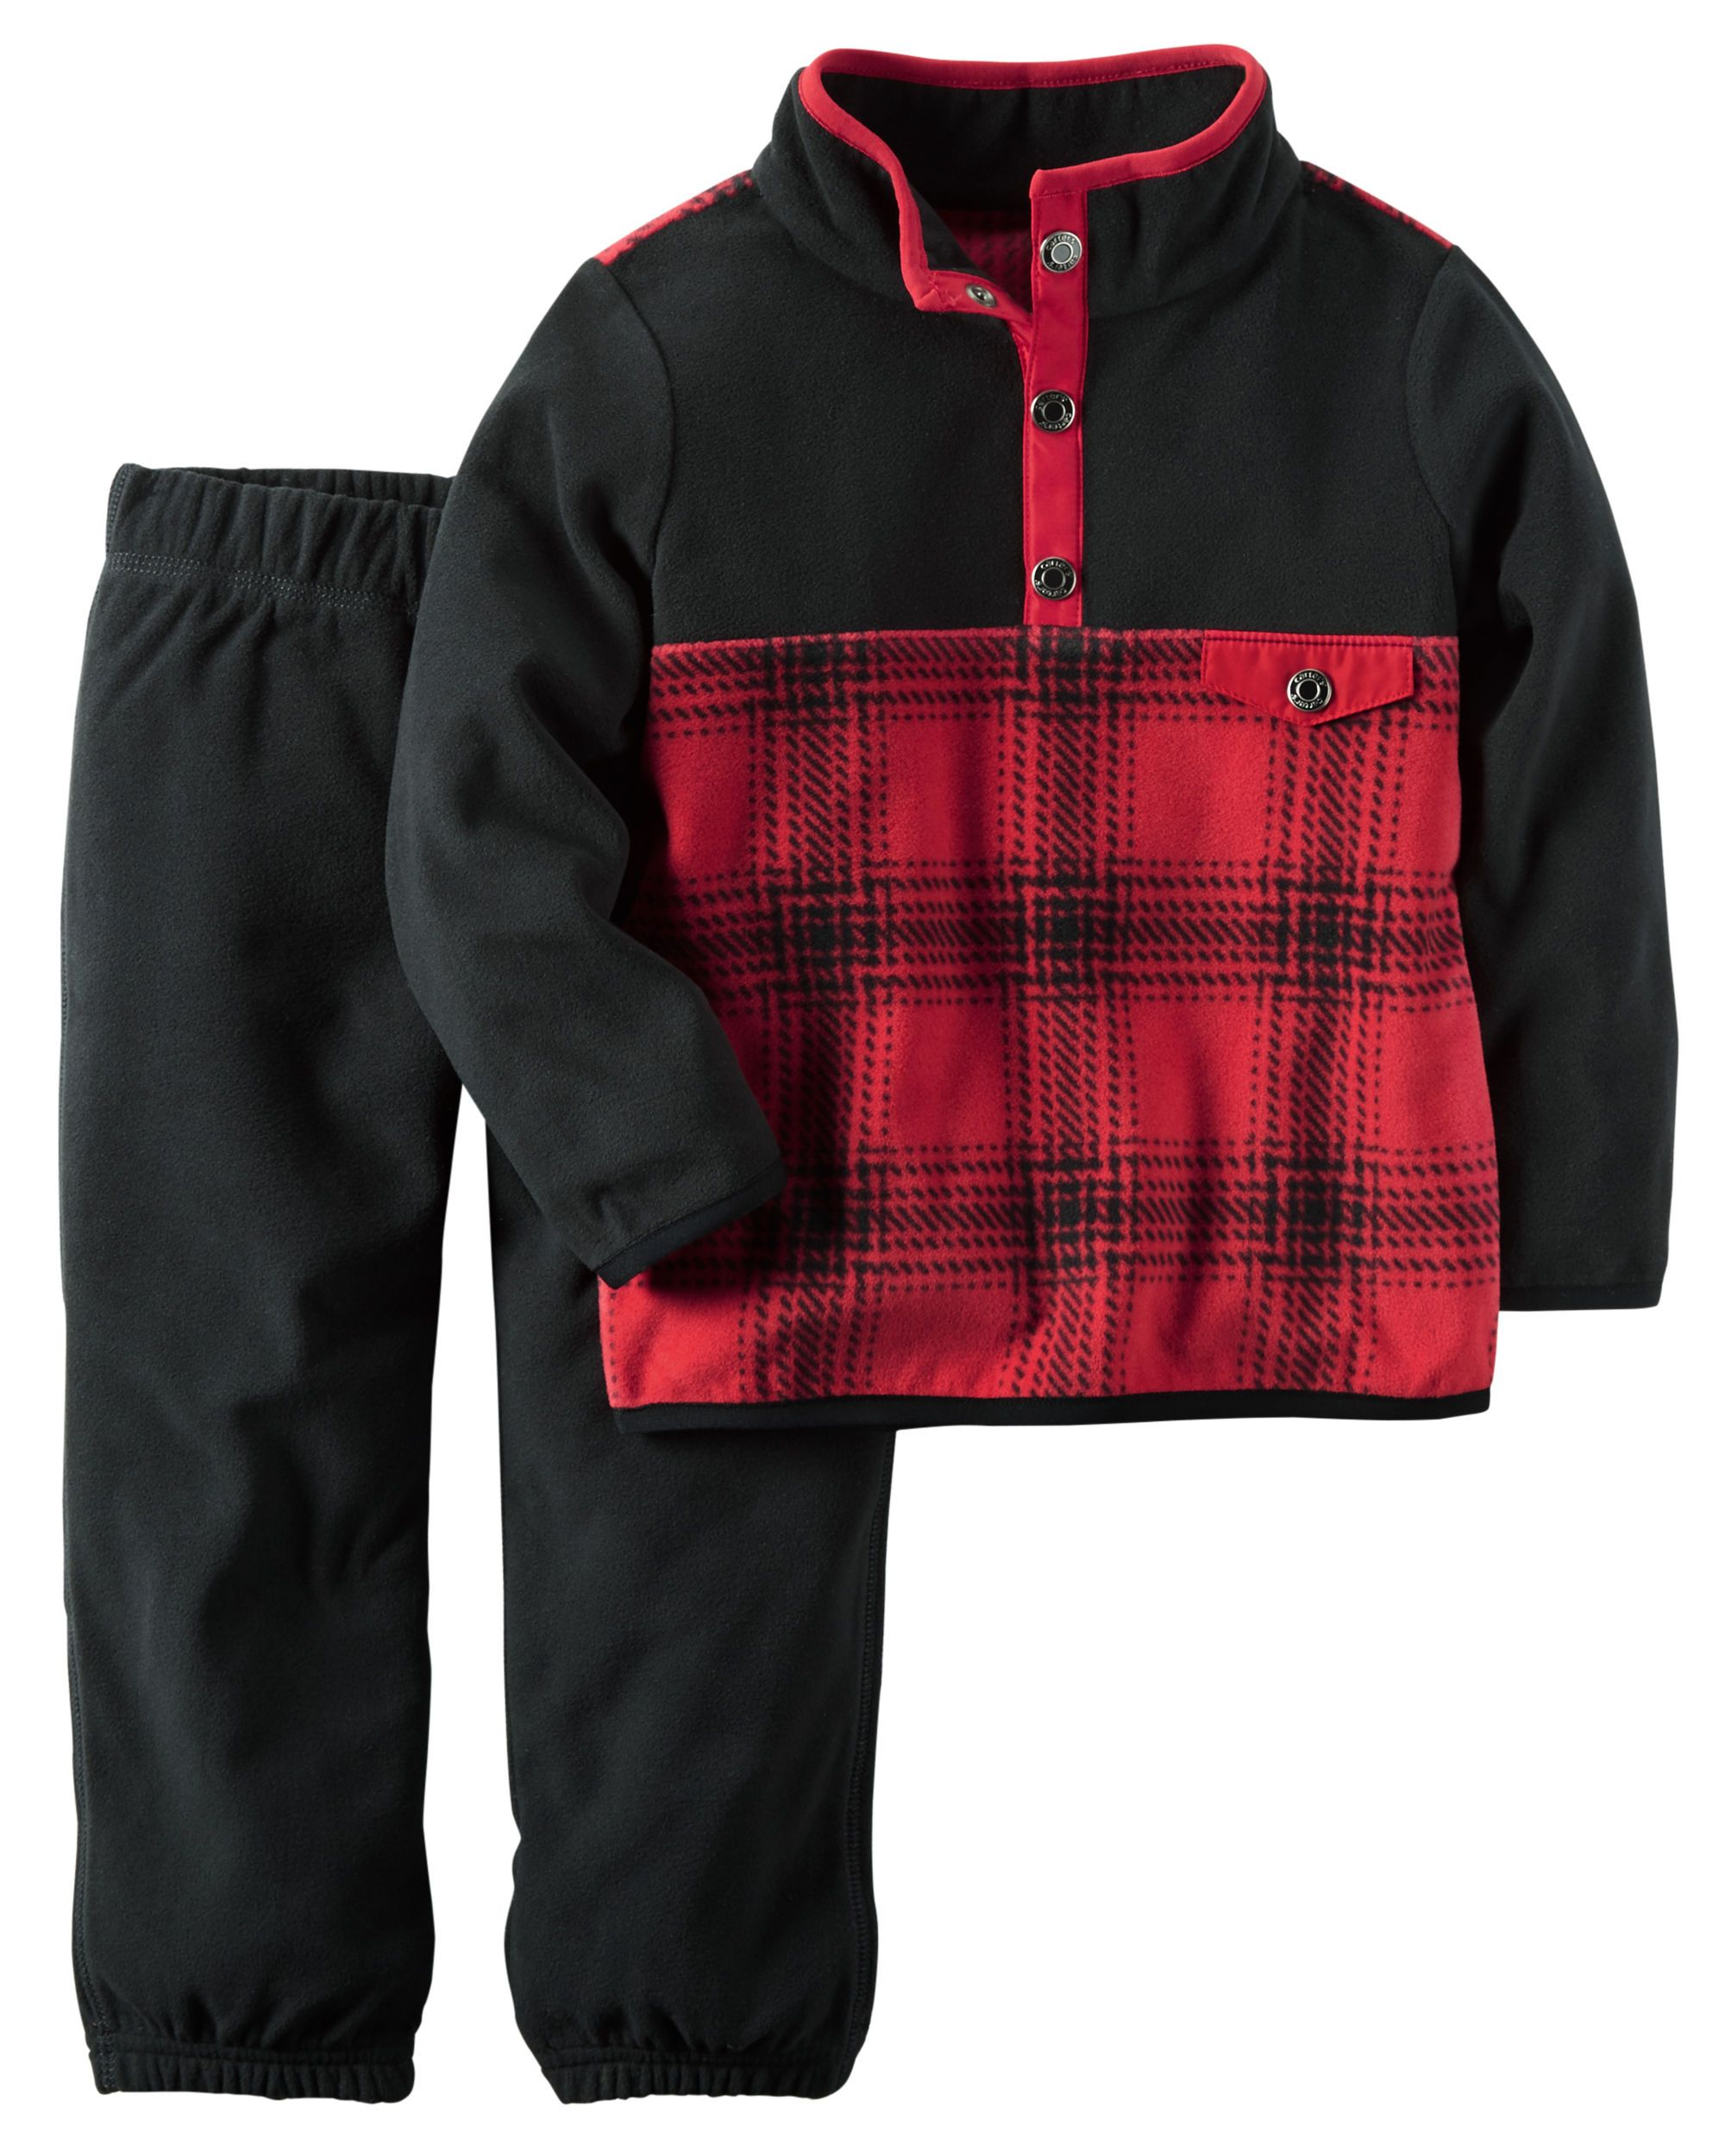 2-Piece Fleece Pullover & Pant Set | Babies clothes, Babies and ...